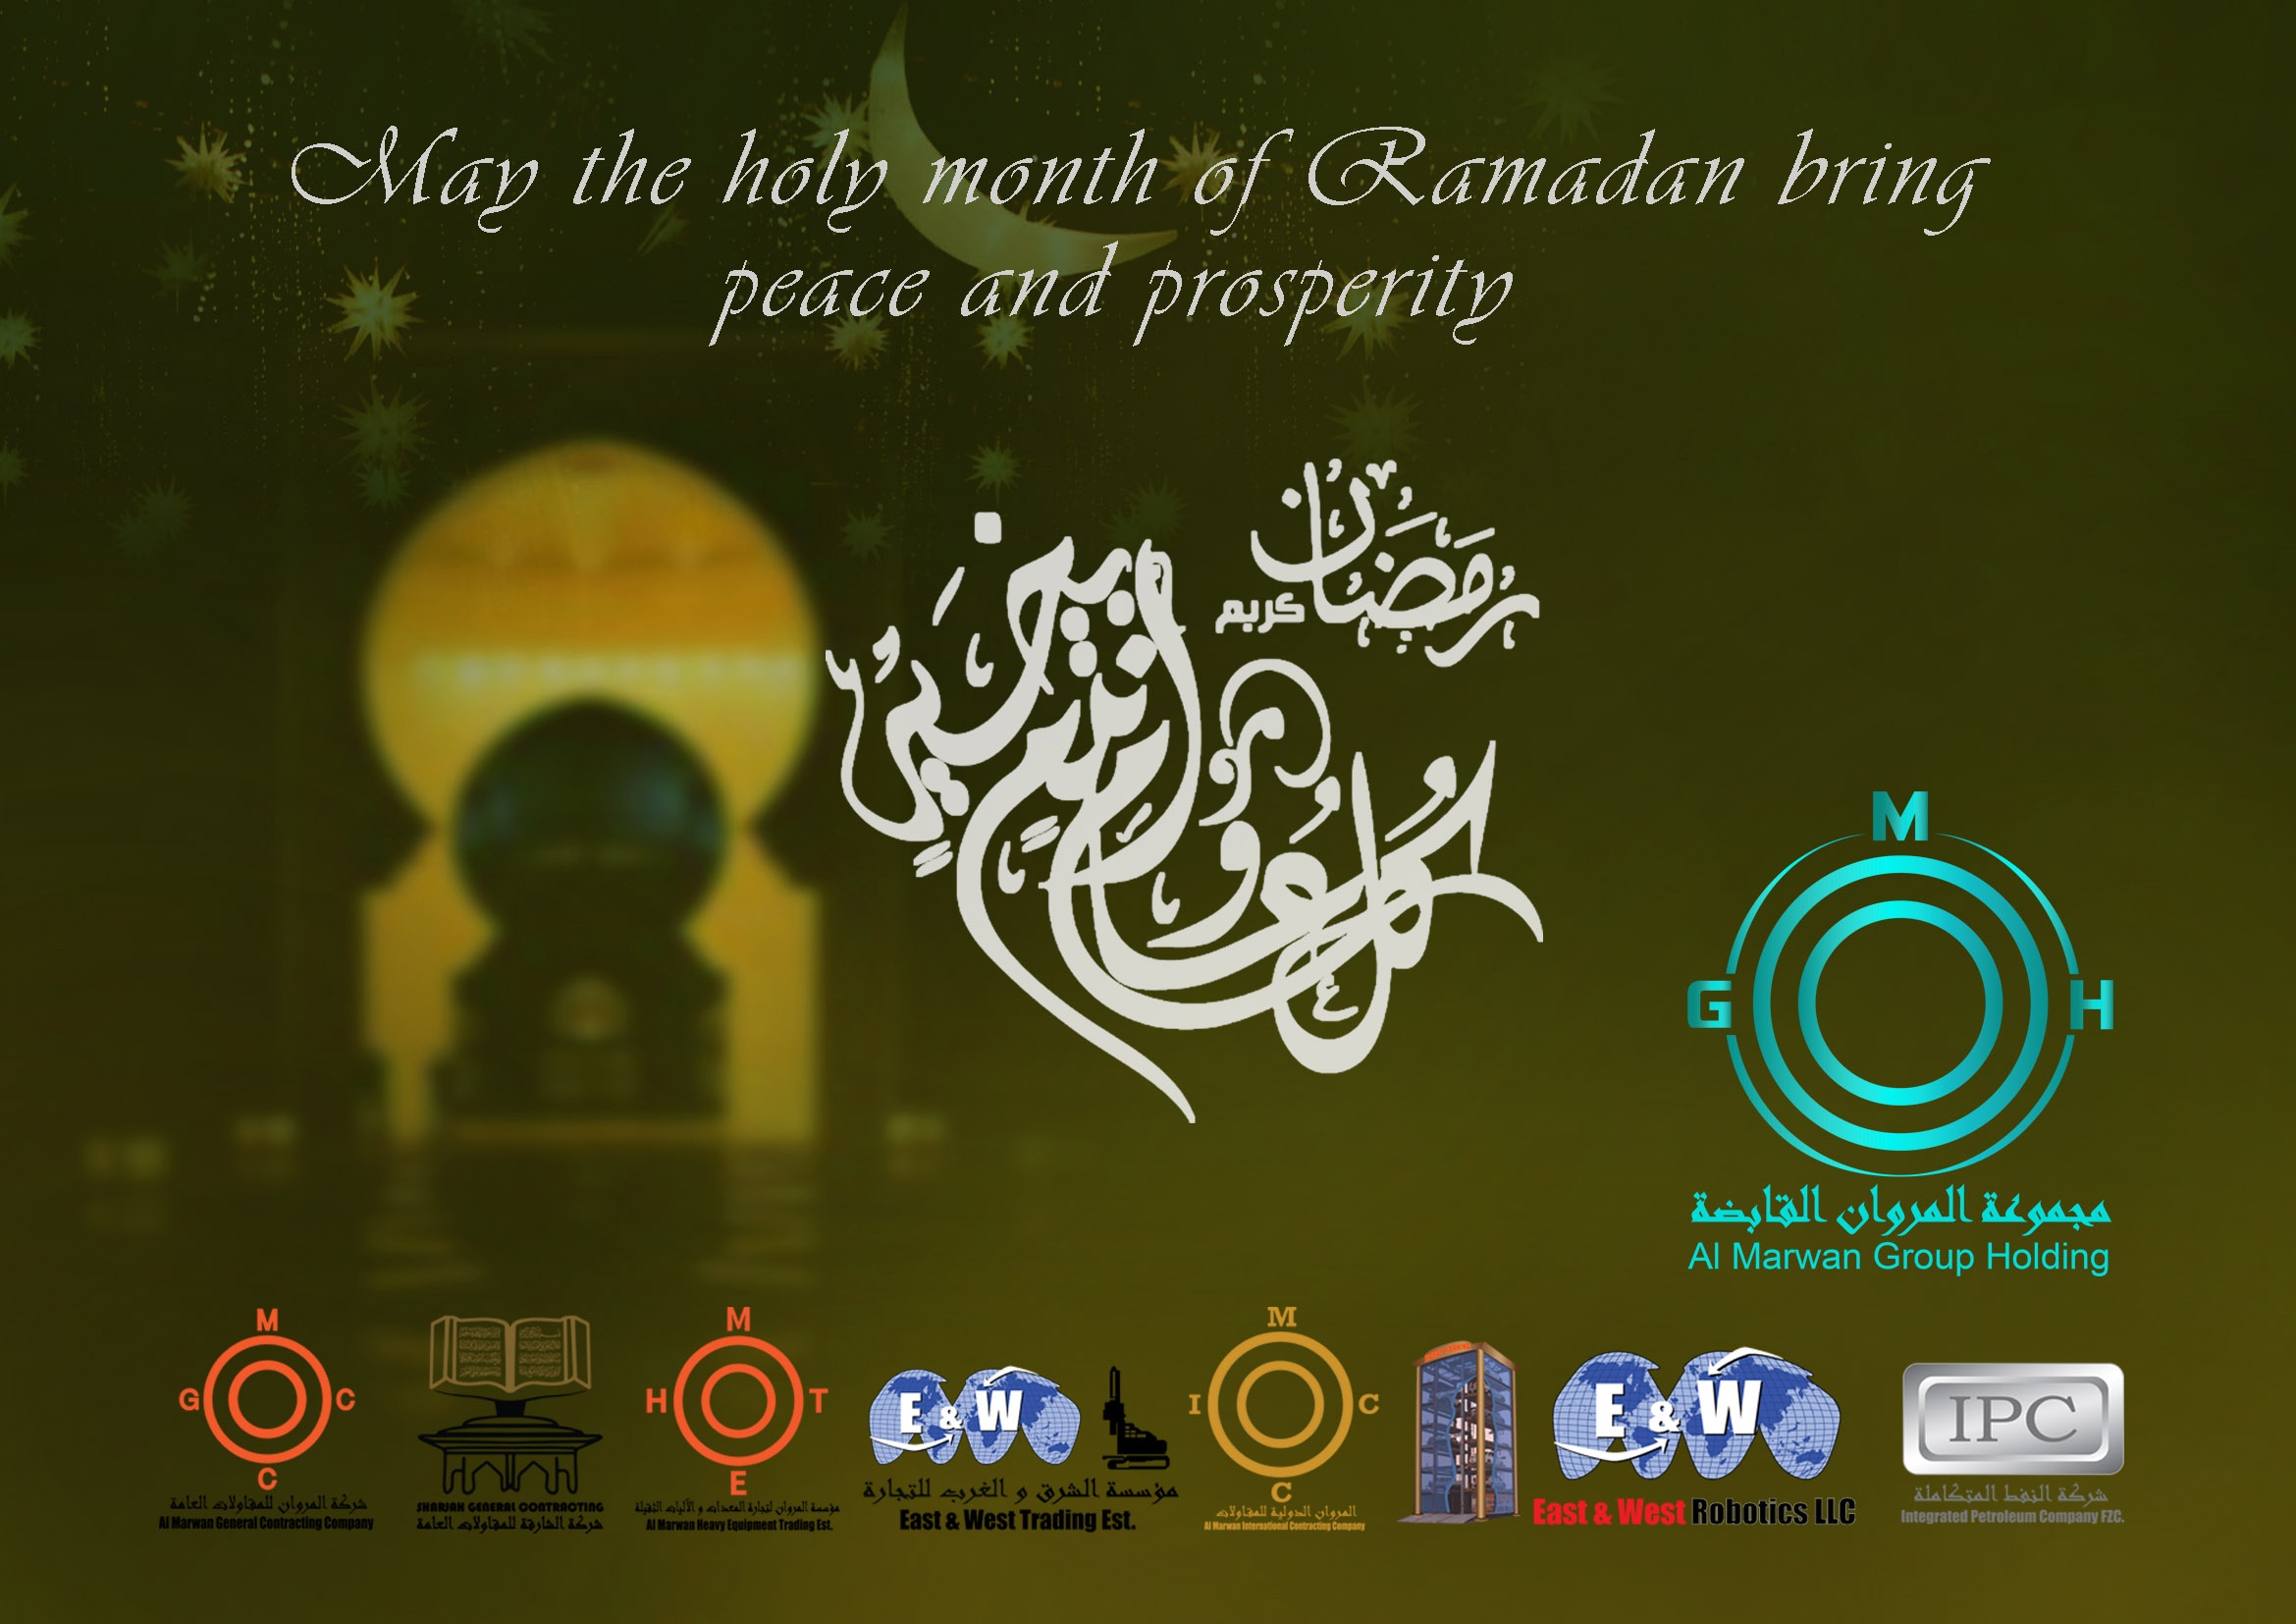 Wishing You a Peaceful and Blessed Ramadan